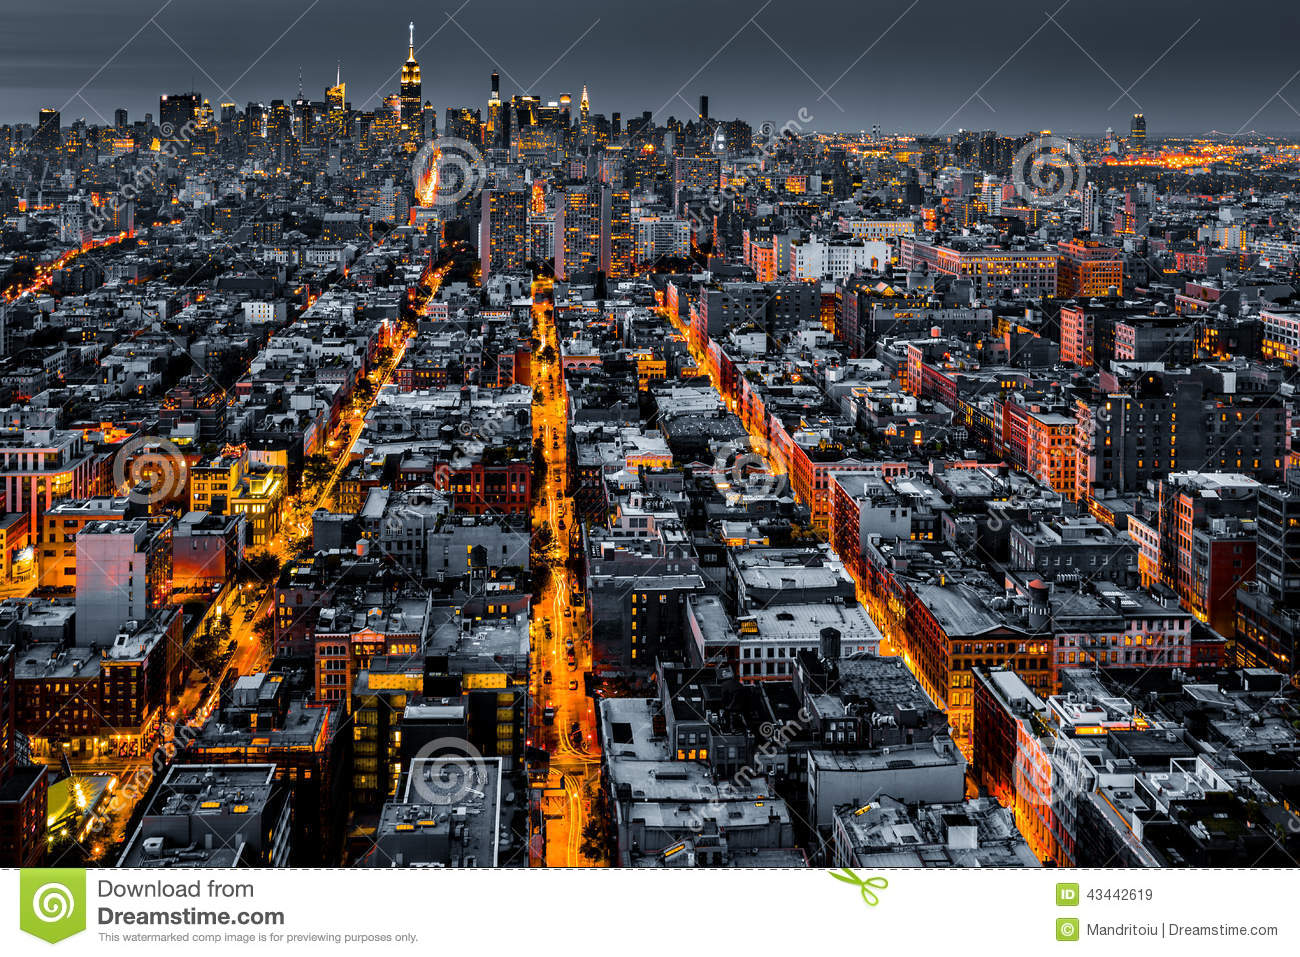 Aerial view of New York City at night